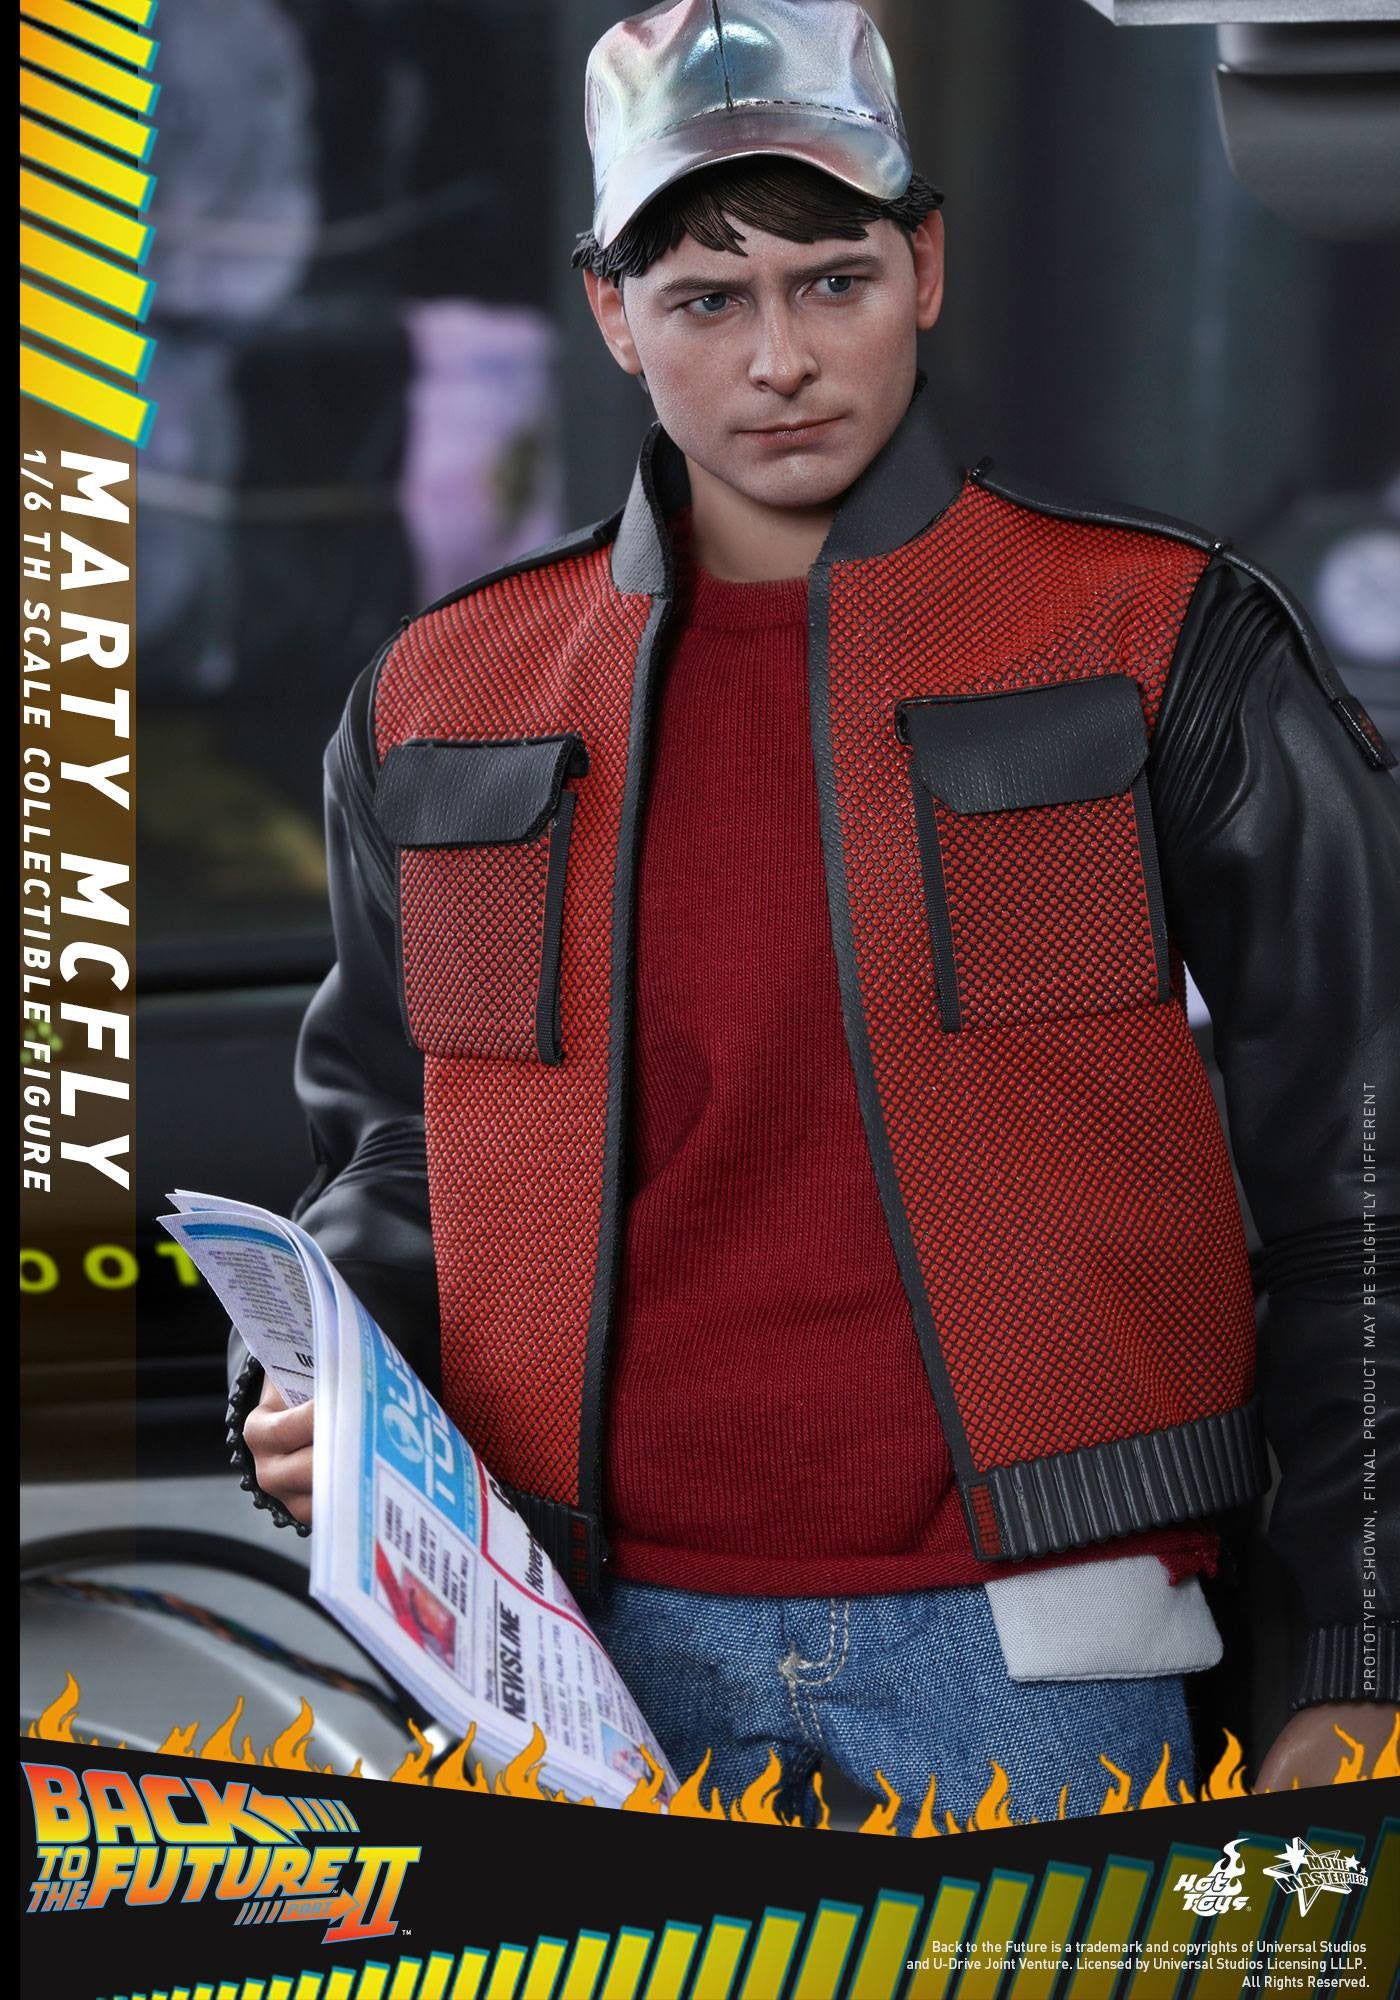 Hot Toys - MMS379 - Back to The Future Part II - Marty McFly (Normal Edition) - Marvelous Toys - 20